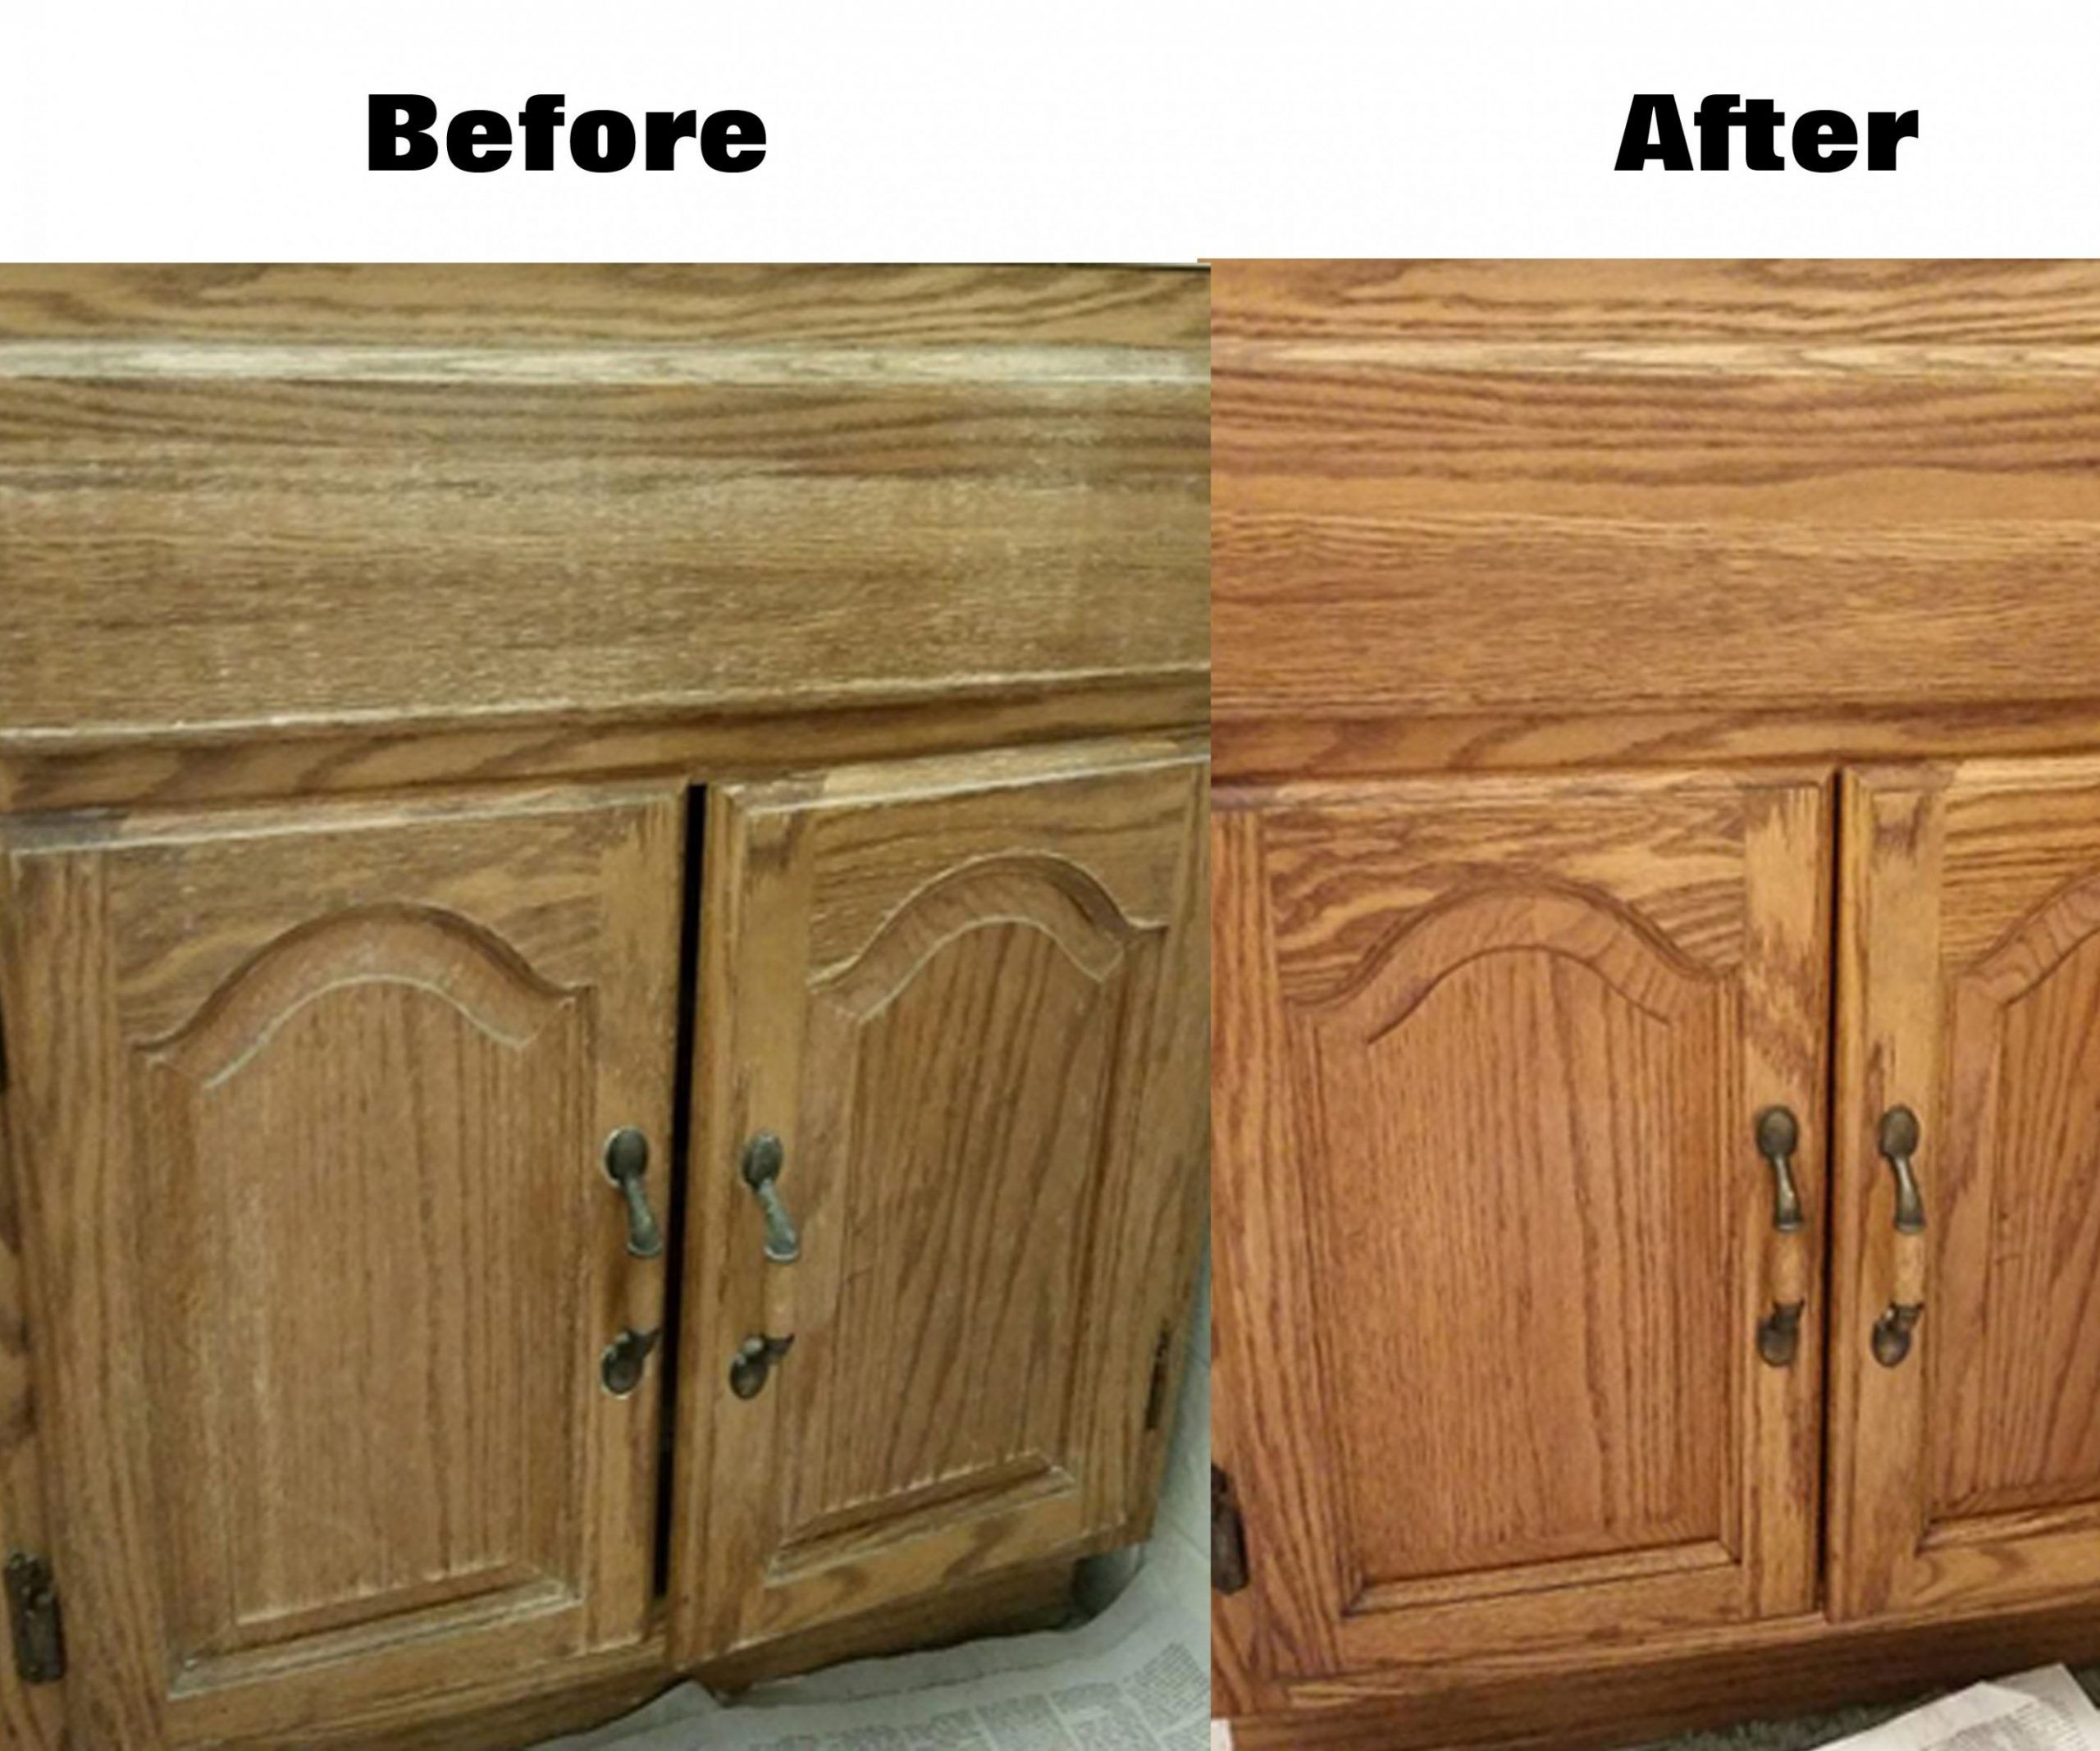 How To Restore Kitchen Cabinets Without Sanding And Varnishing